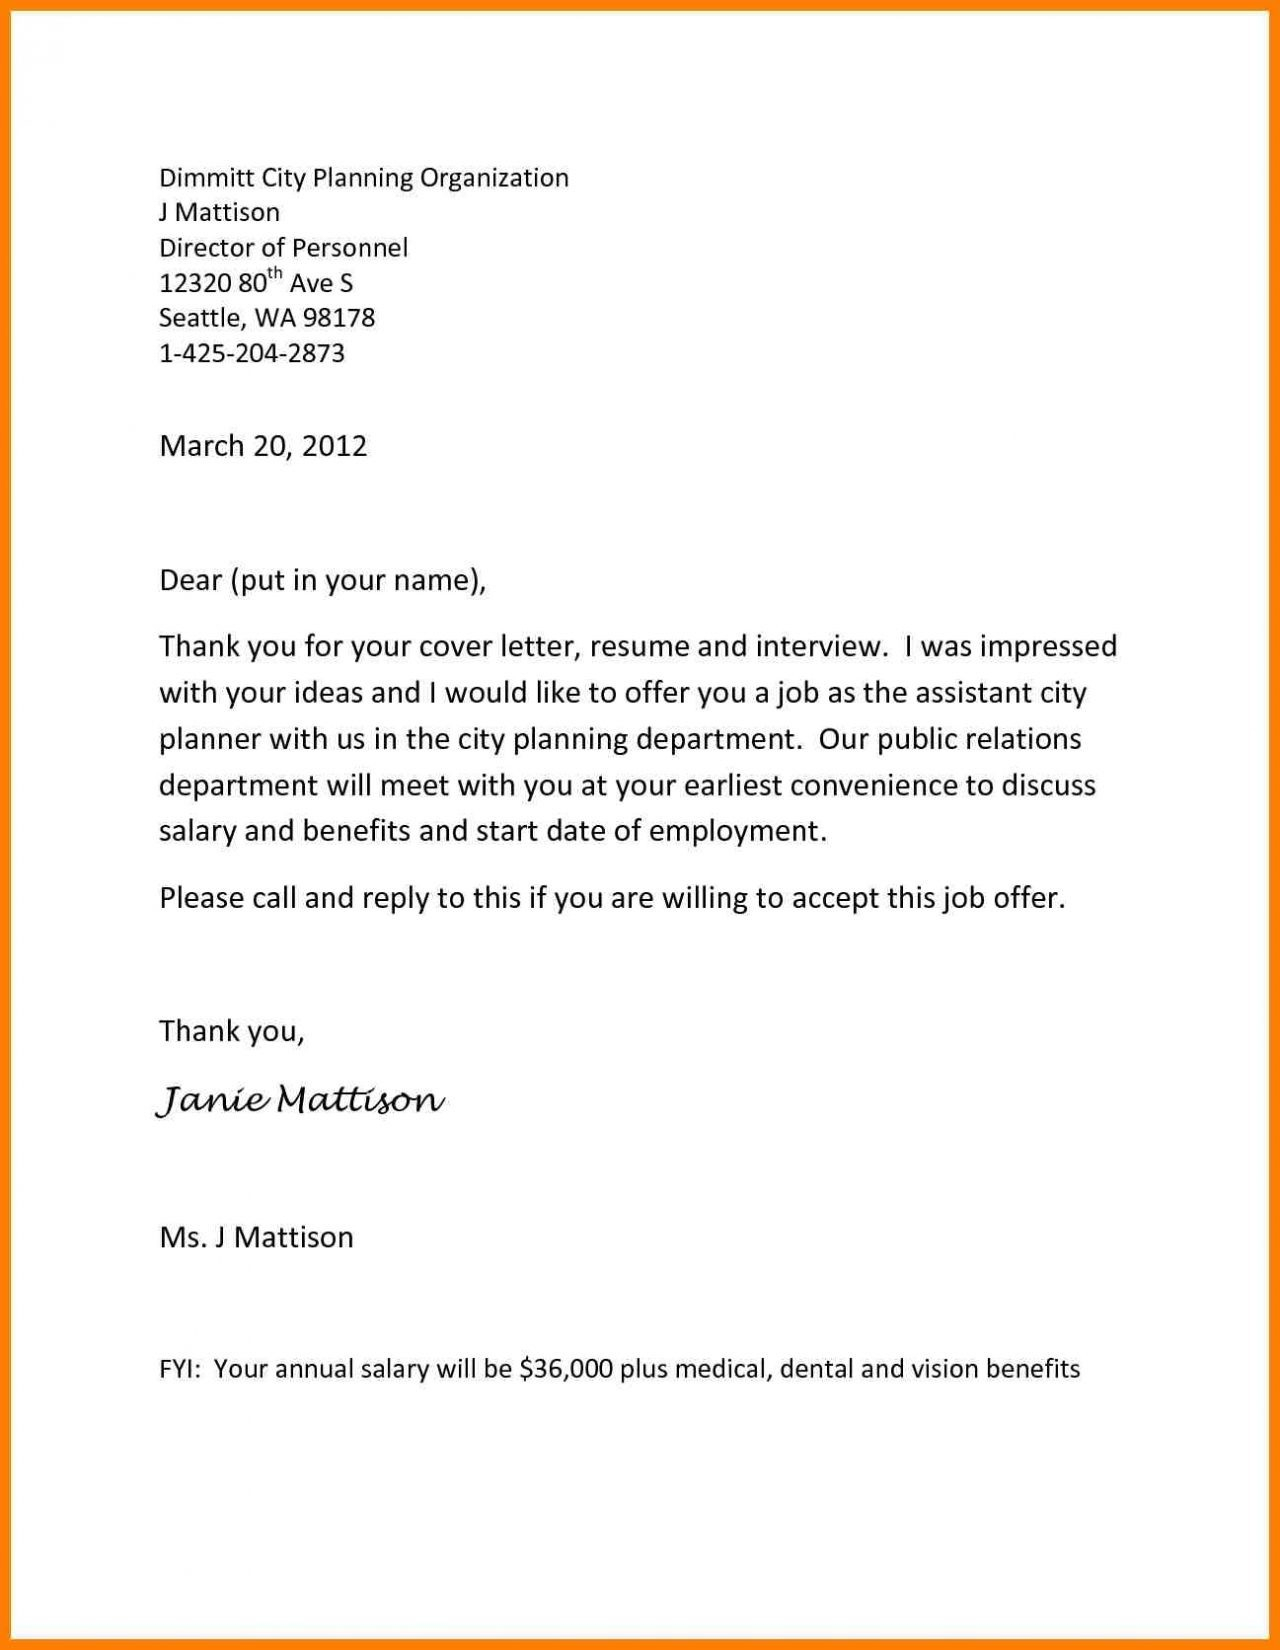 Employment Job Offer Letter Template - Job Fer Letter Template Us Copy Od Consultant Cover Letter Fungram